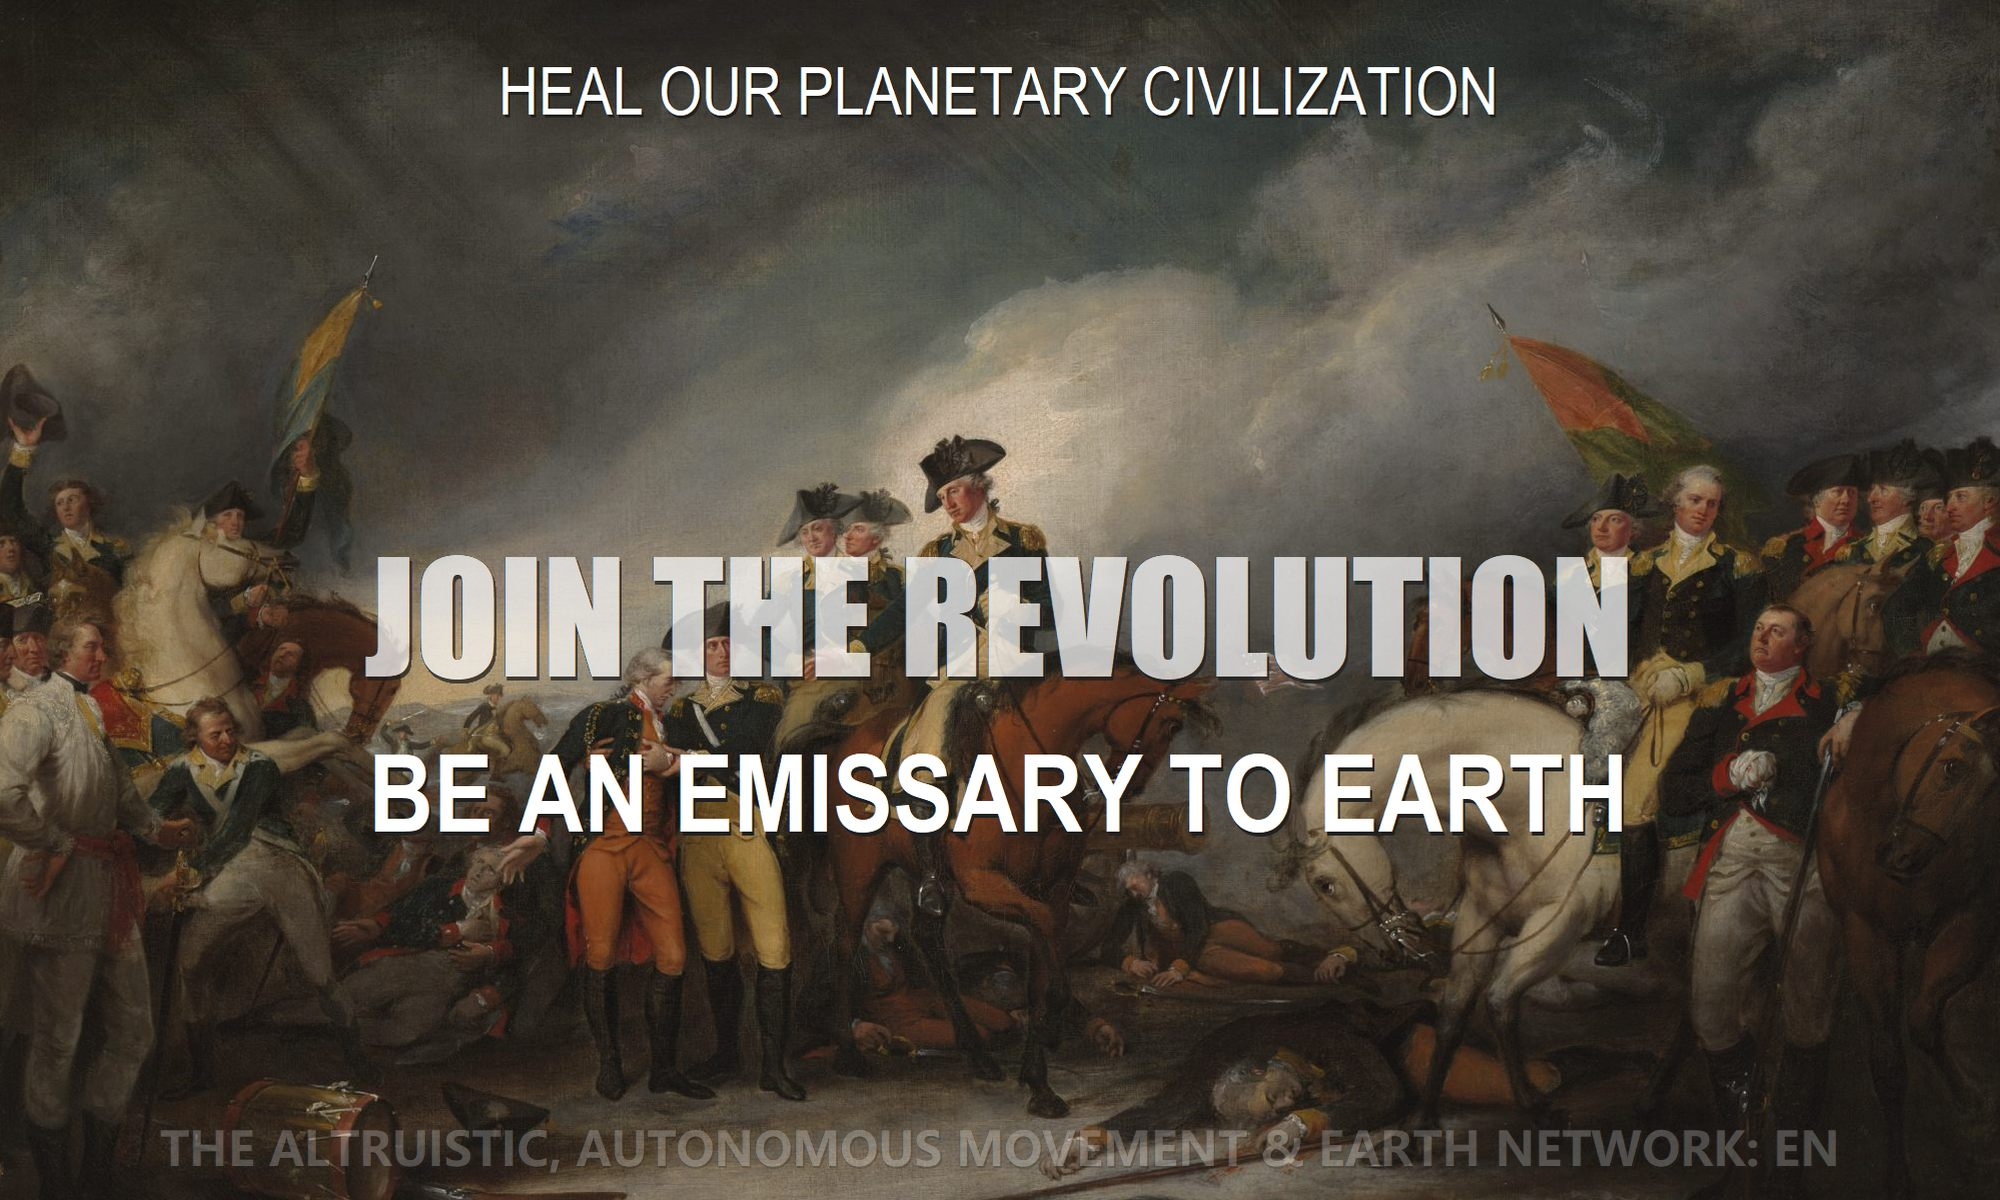 Revolutionaries after battle depict revolution as we change our reality to change our world through the altruistic autonomous movement